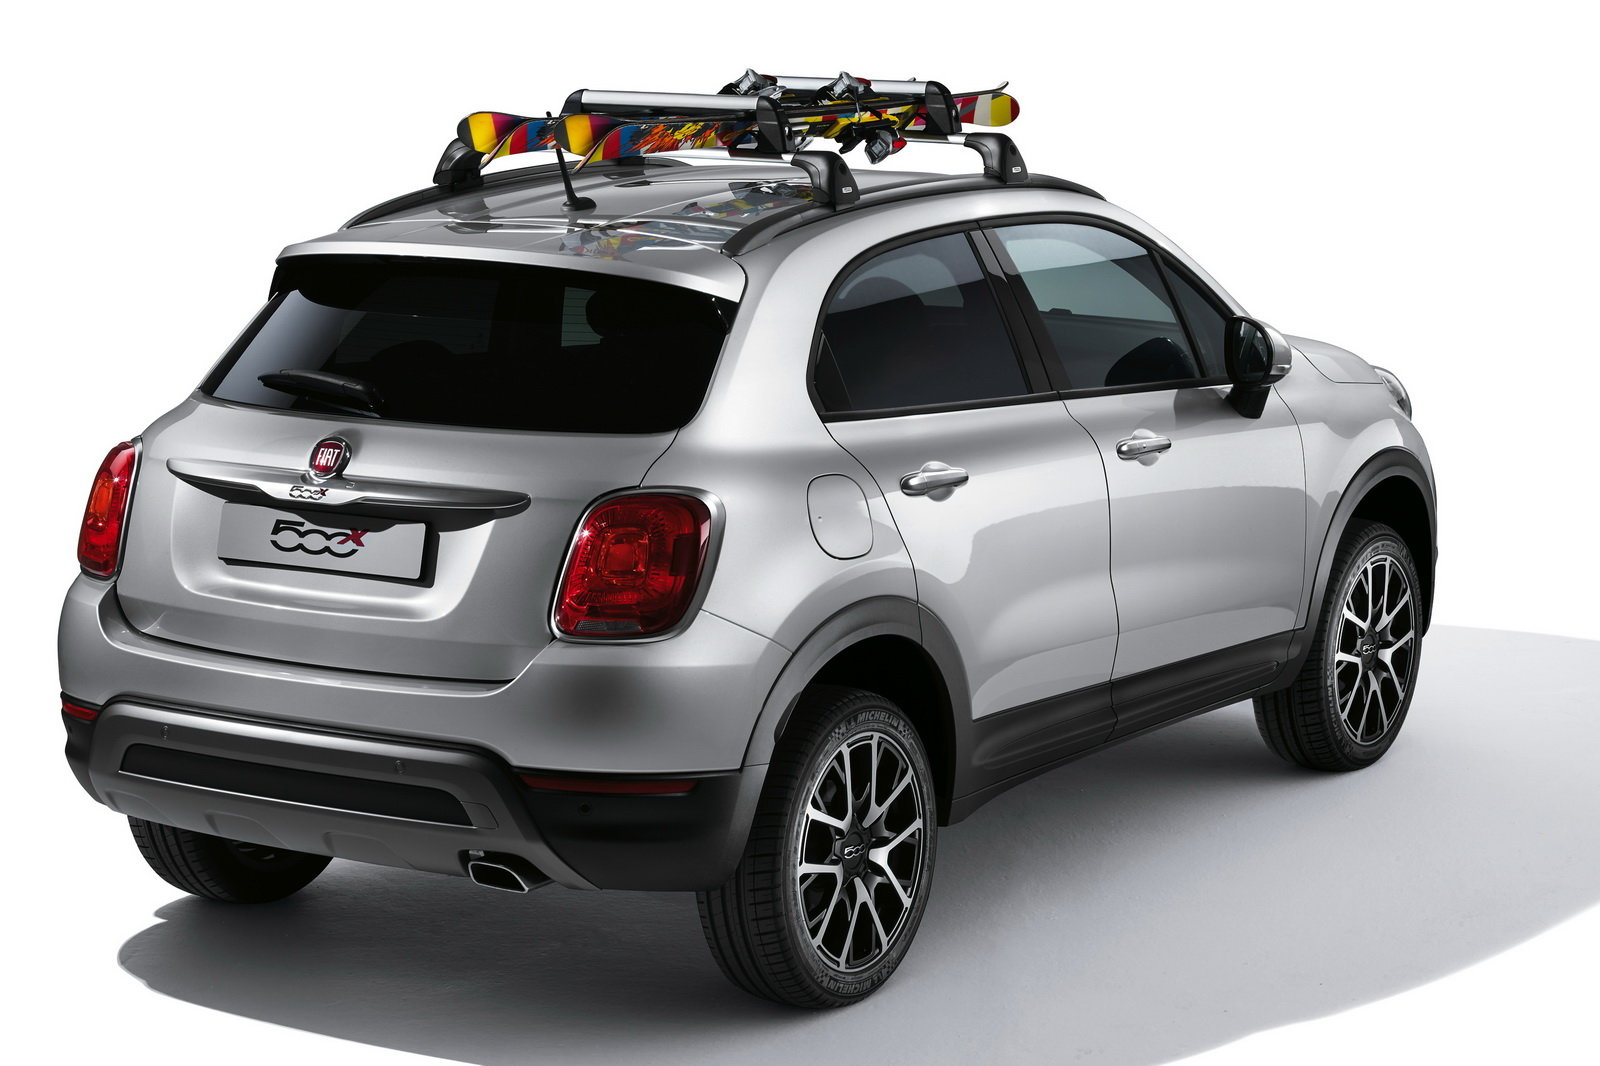 Foto fiat 500x gli accessori firmati mopar for Accessori firmati